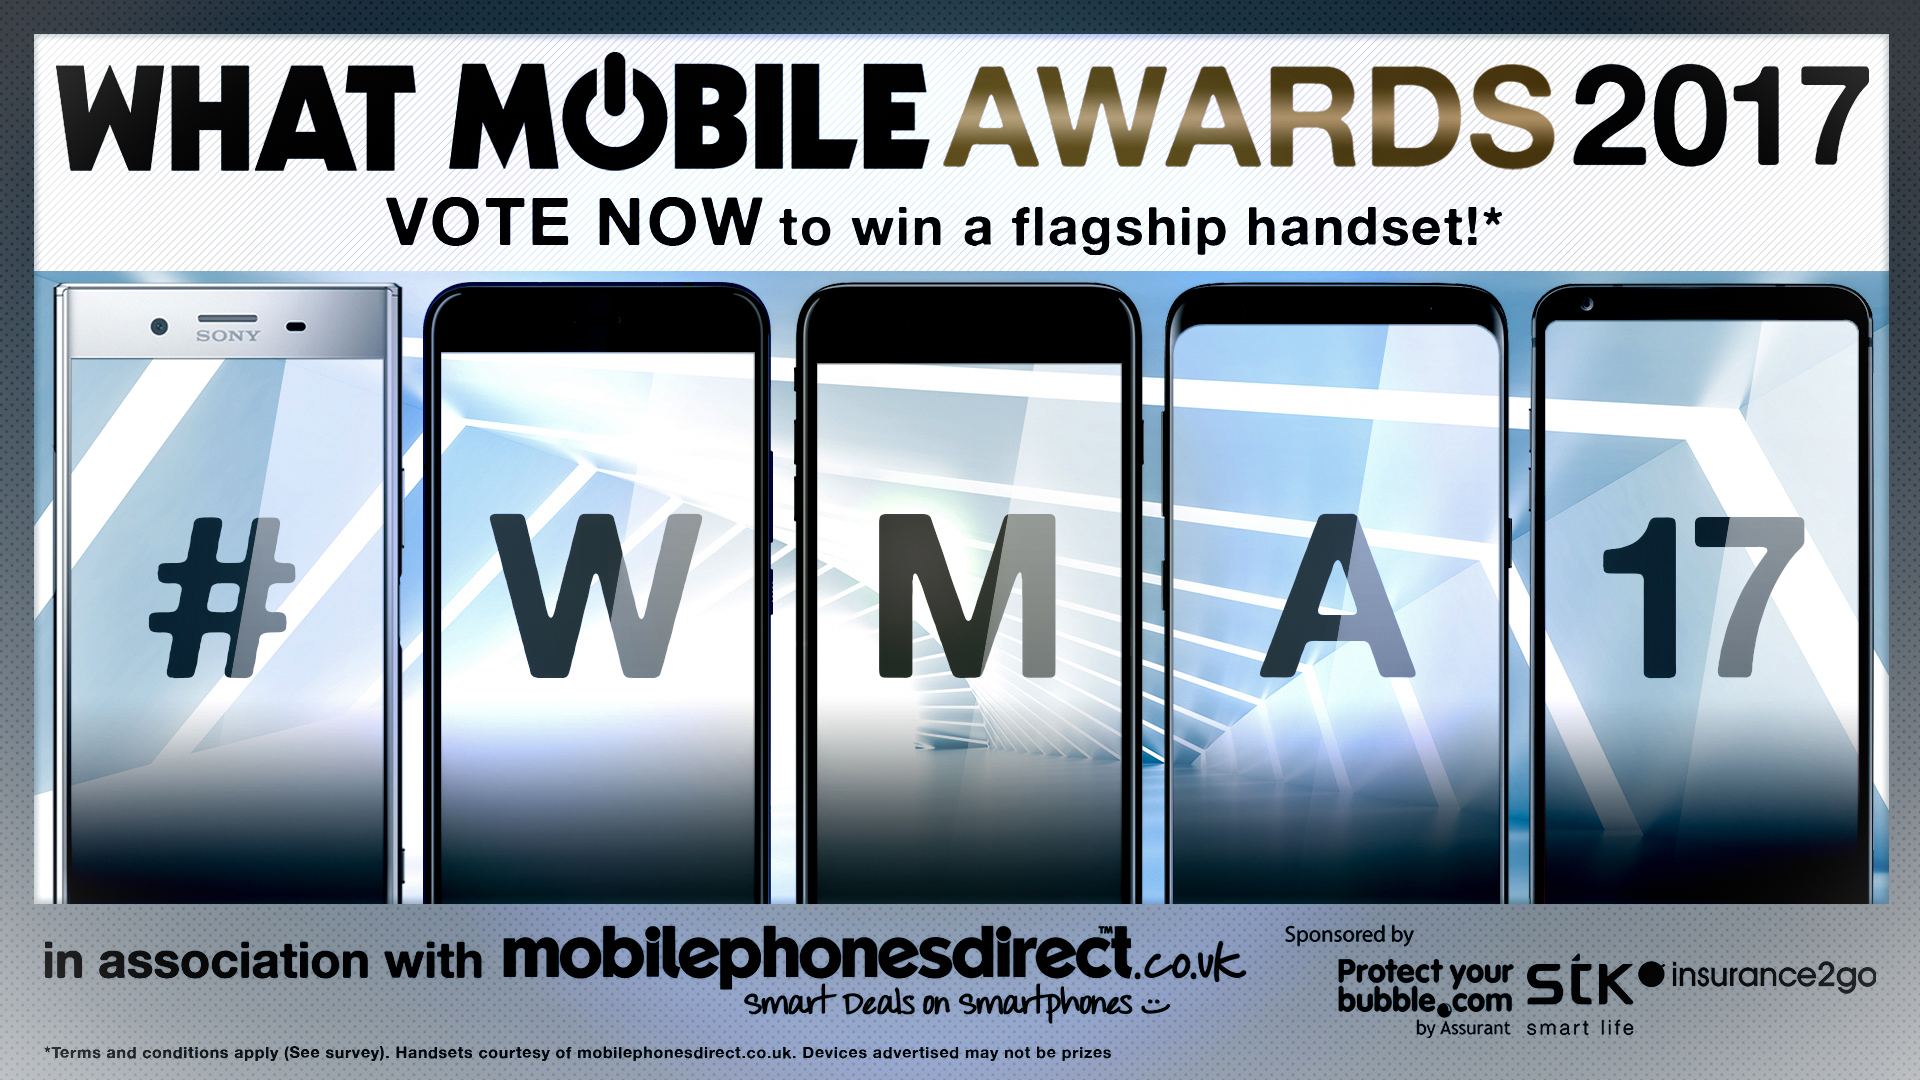 What Mobile Awards 2017